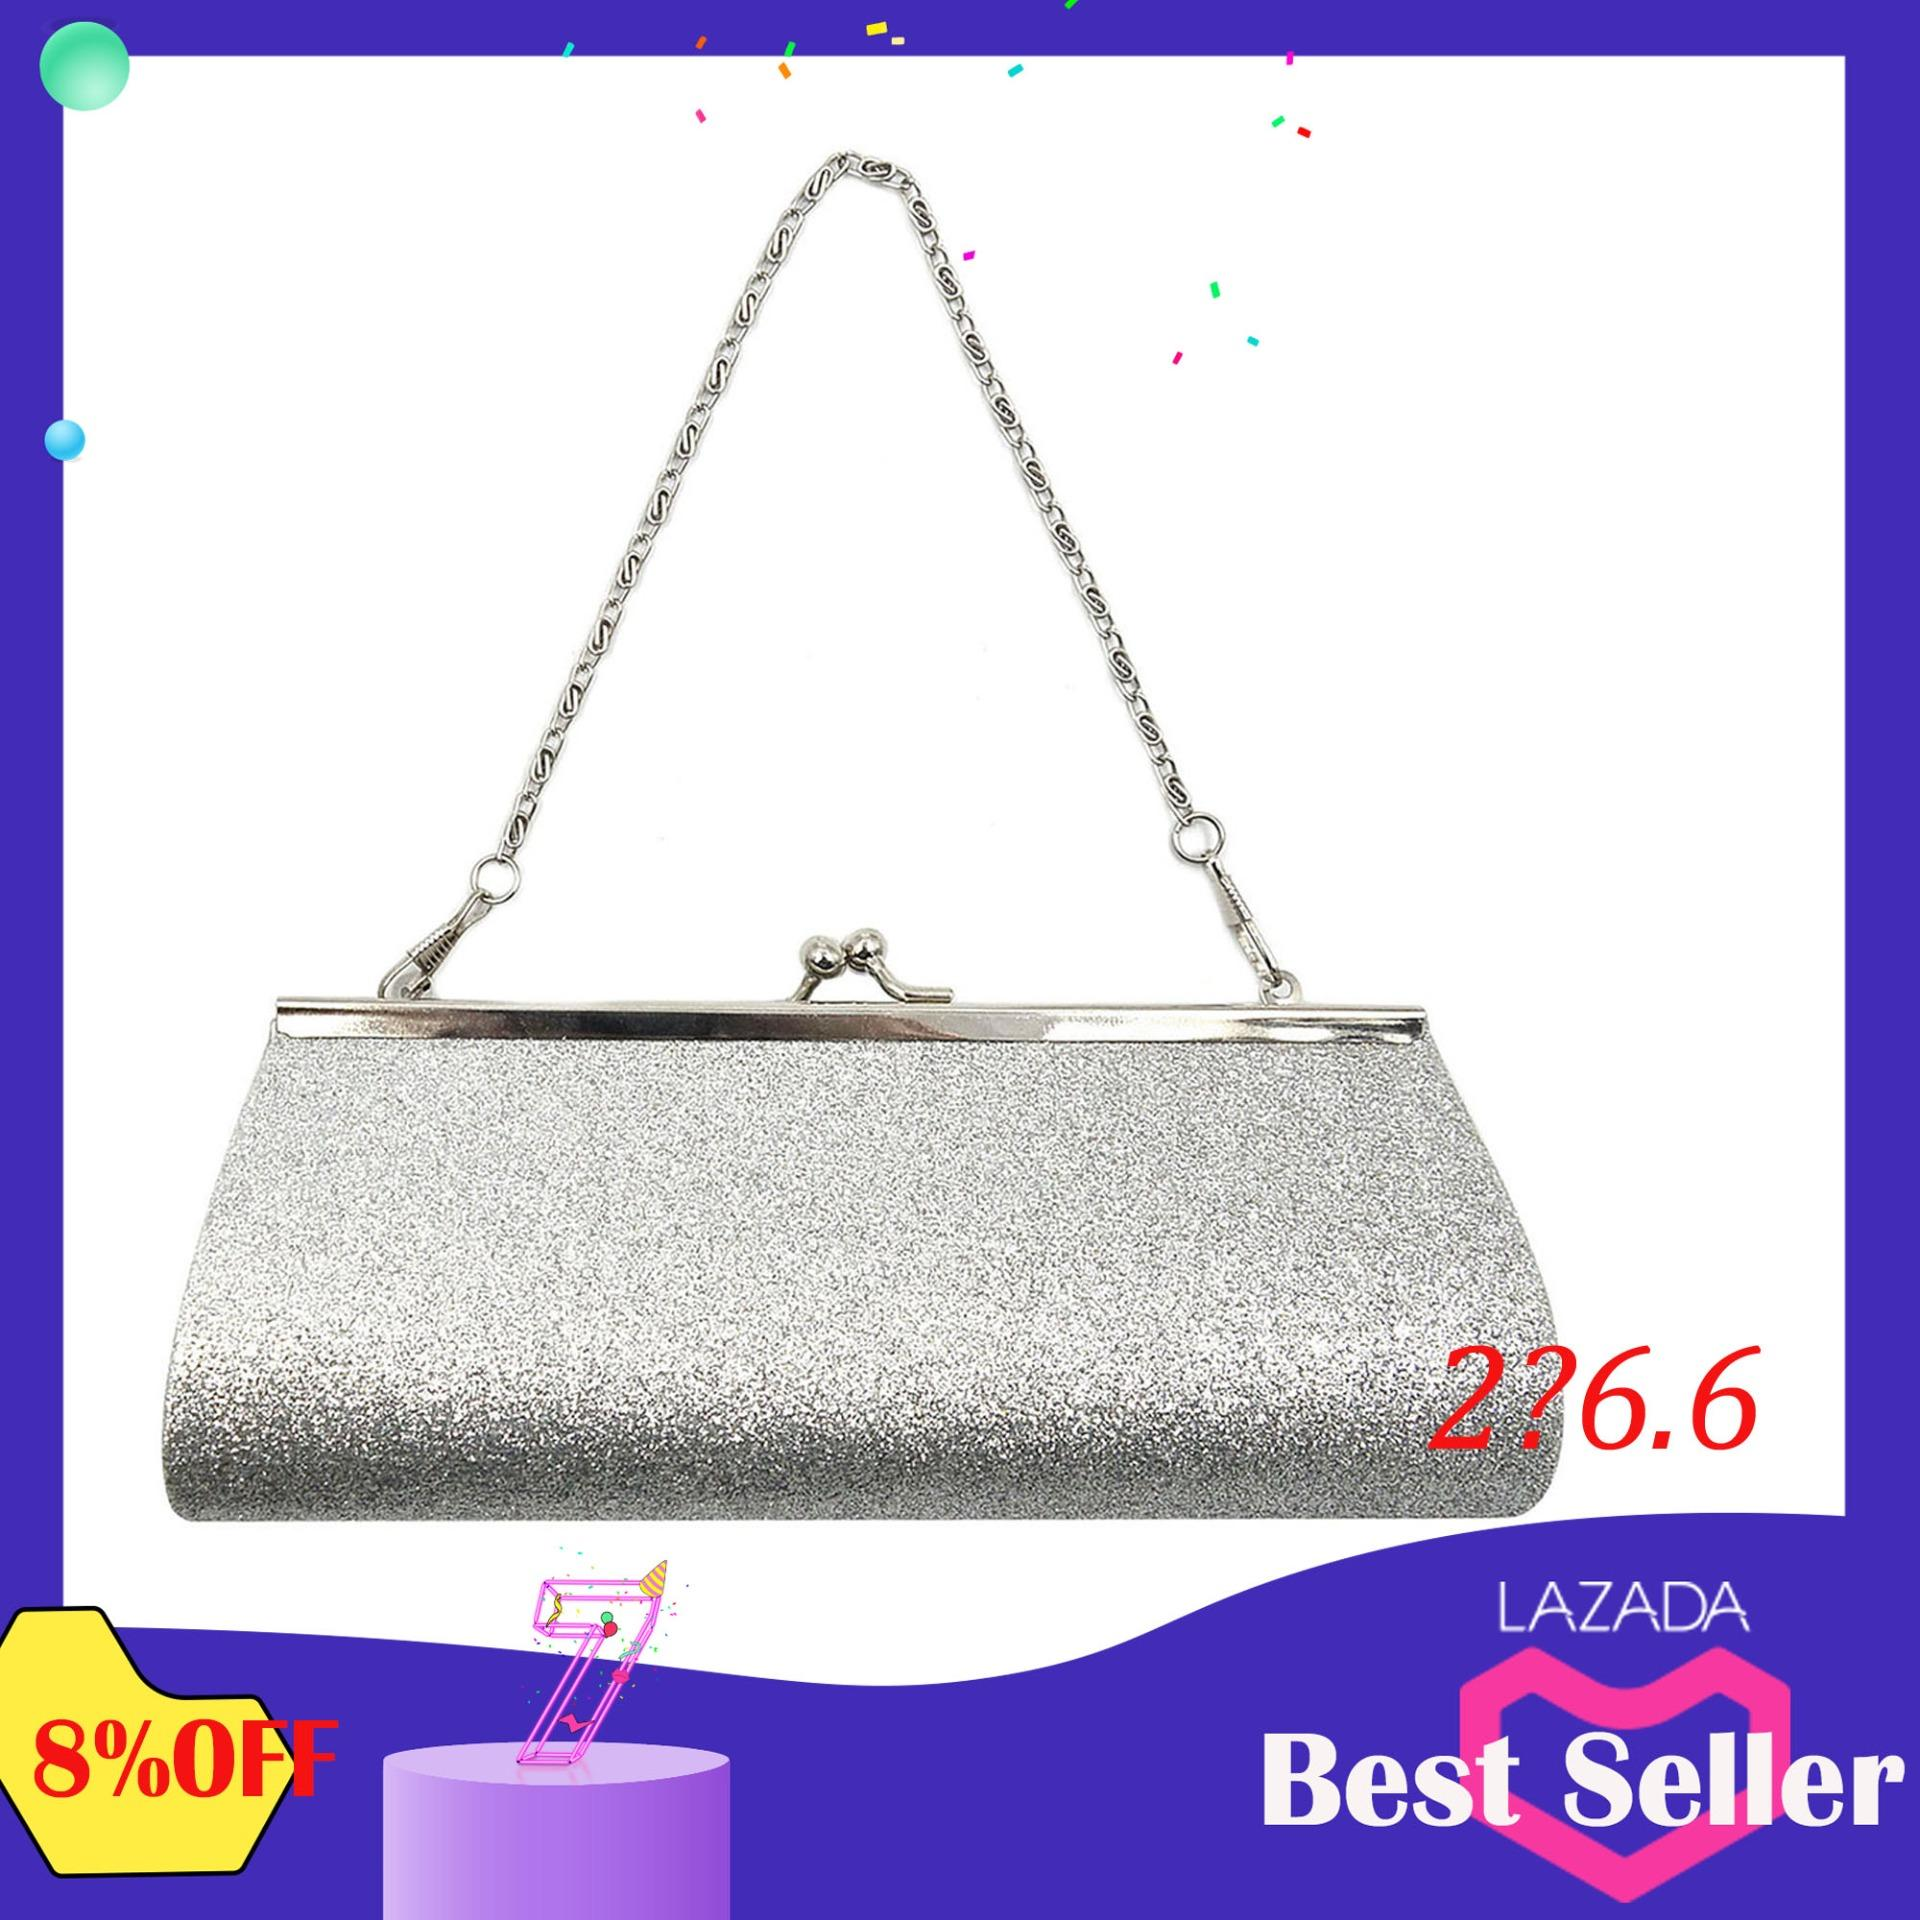 3edc0b1d73b3 Elek Ladies Girls Sparkly Glitter Clutch Handbag Wallet Wedding Bridal Prom  Party Evening Purse Sliver(